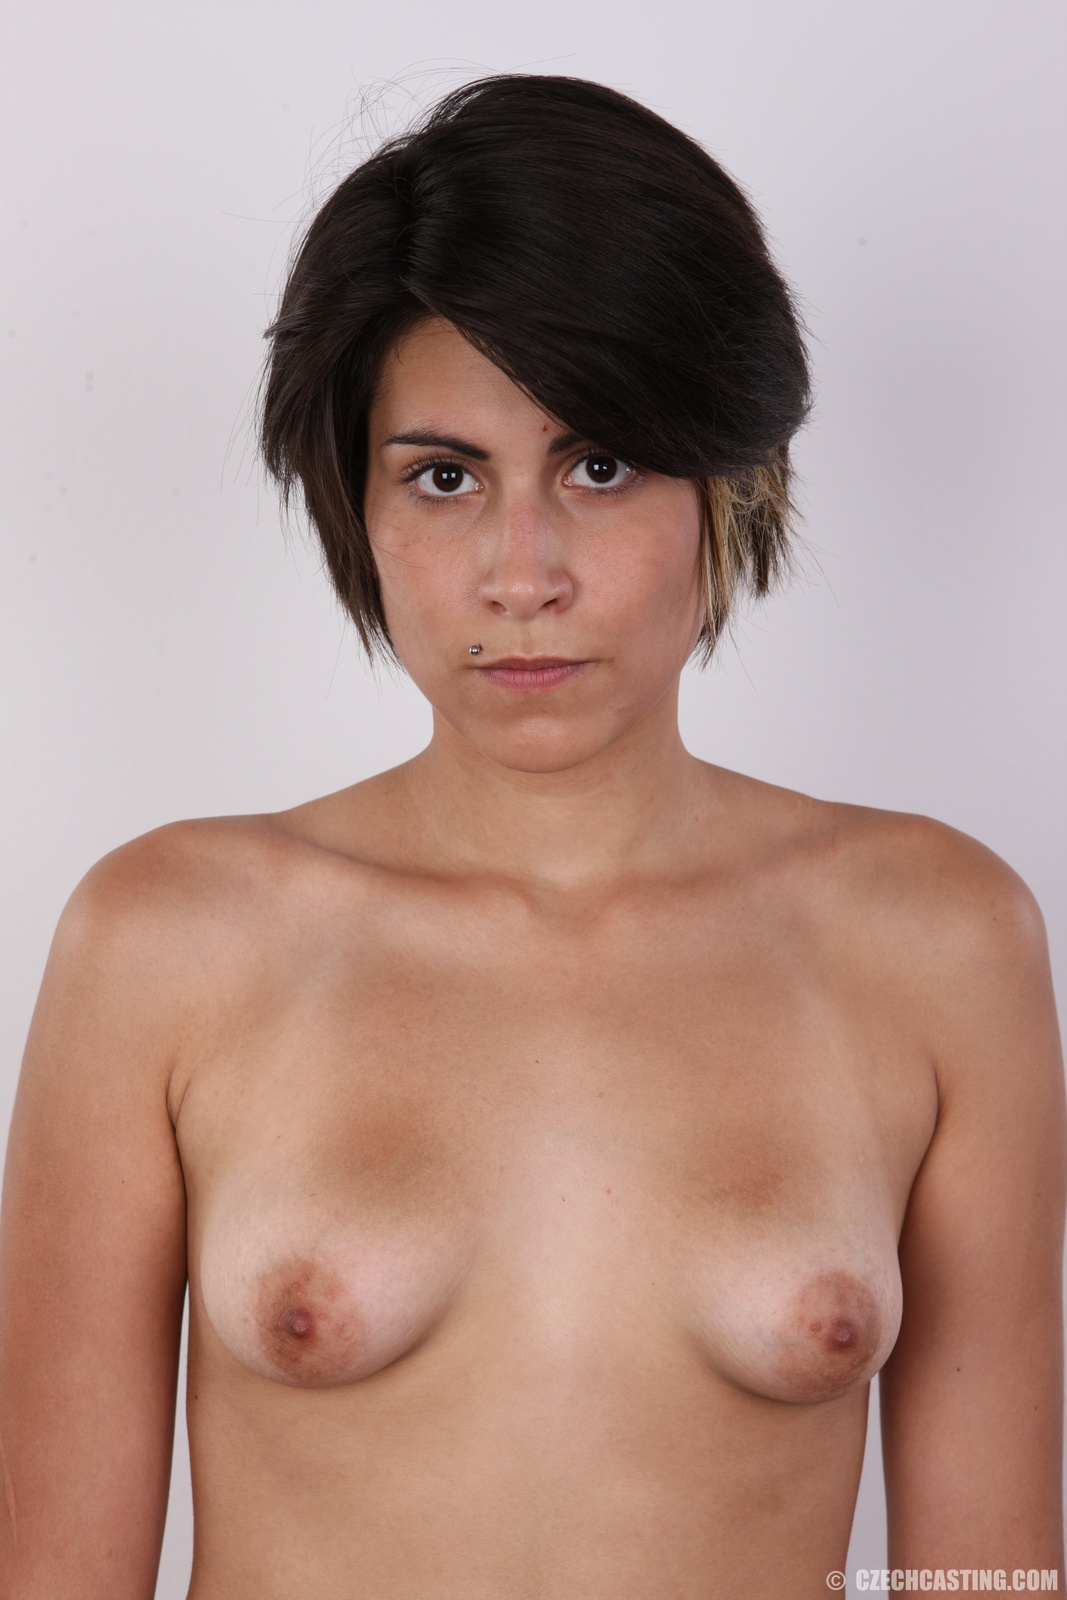 girl famous people naked